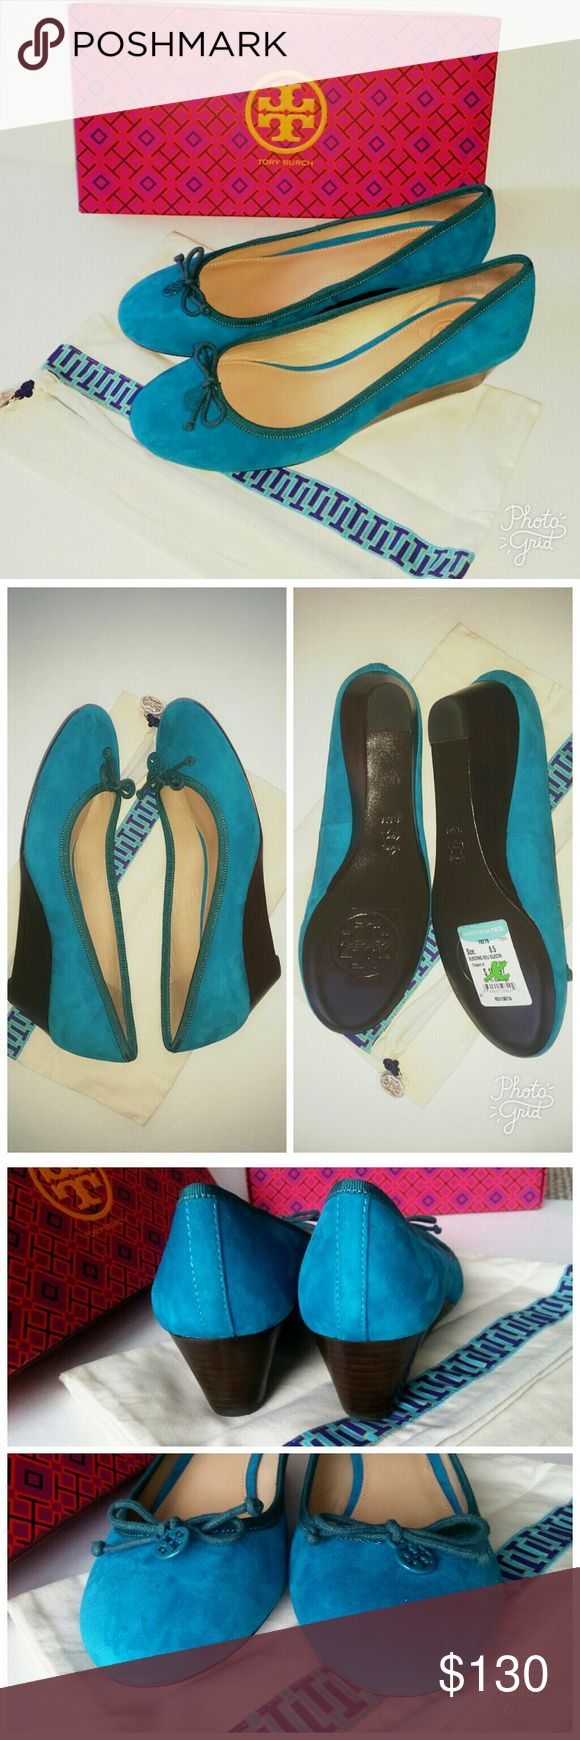 """Tory Burch Suede Turquoise Wedge Shoes Beautiful """"Chelsea"""" suede wedge platform pumps by Tory Burch  Soft suede upper. Leather lining, padded insole. 1 3/4"""" (45mm) wedge.  8.5M/ 38-38.5 Bow accent & T logo charm at toe. Electric blue (dark turquoise).  New with tags, dustbag. Box is included, but it's from another pair. Please note tiny glue marks on sides. Tory Burch Shoes Wedges"""